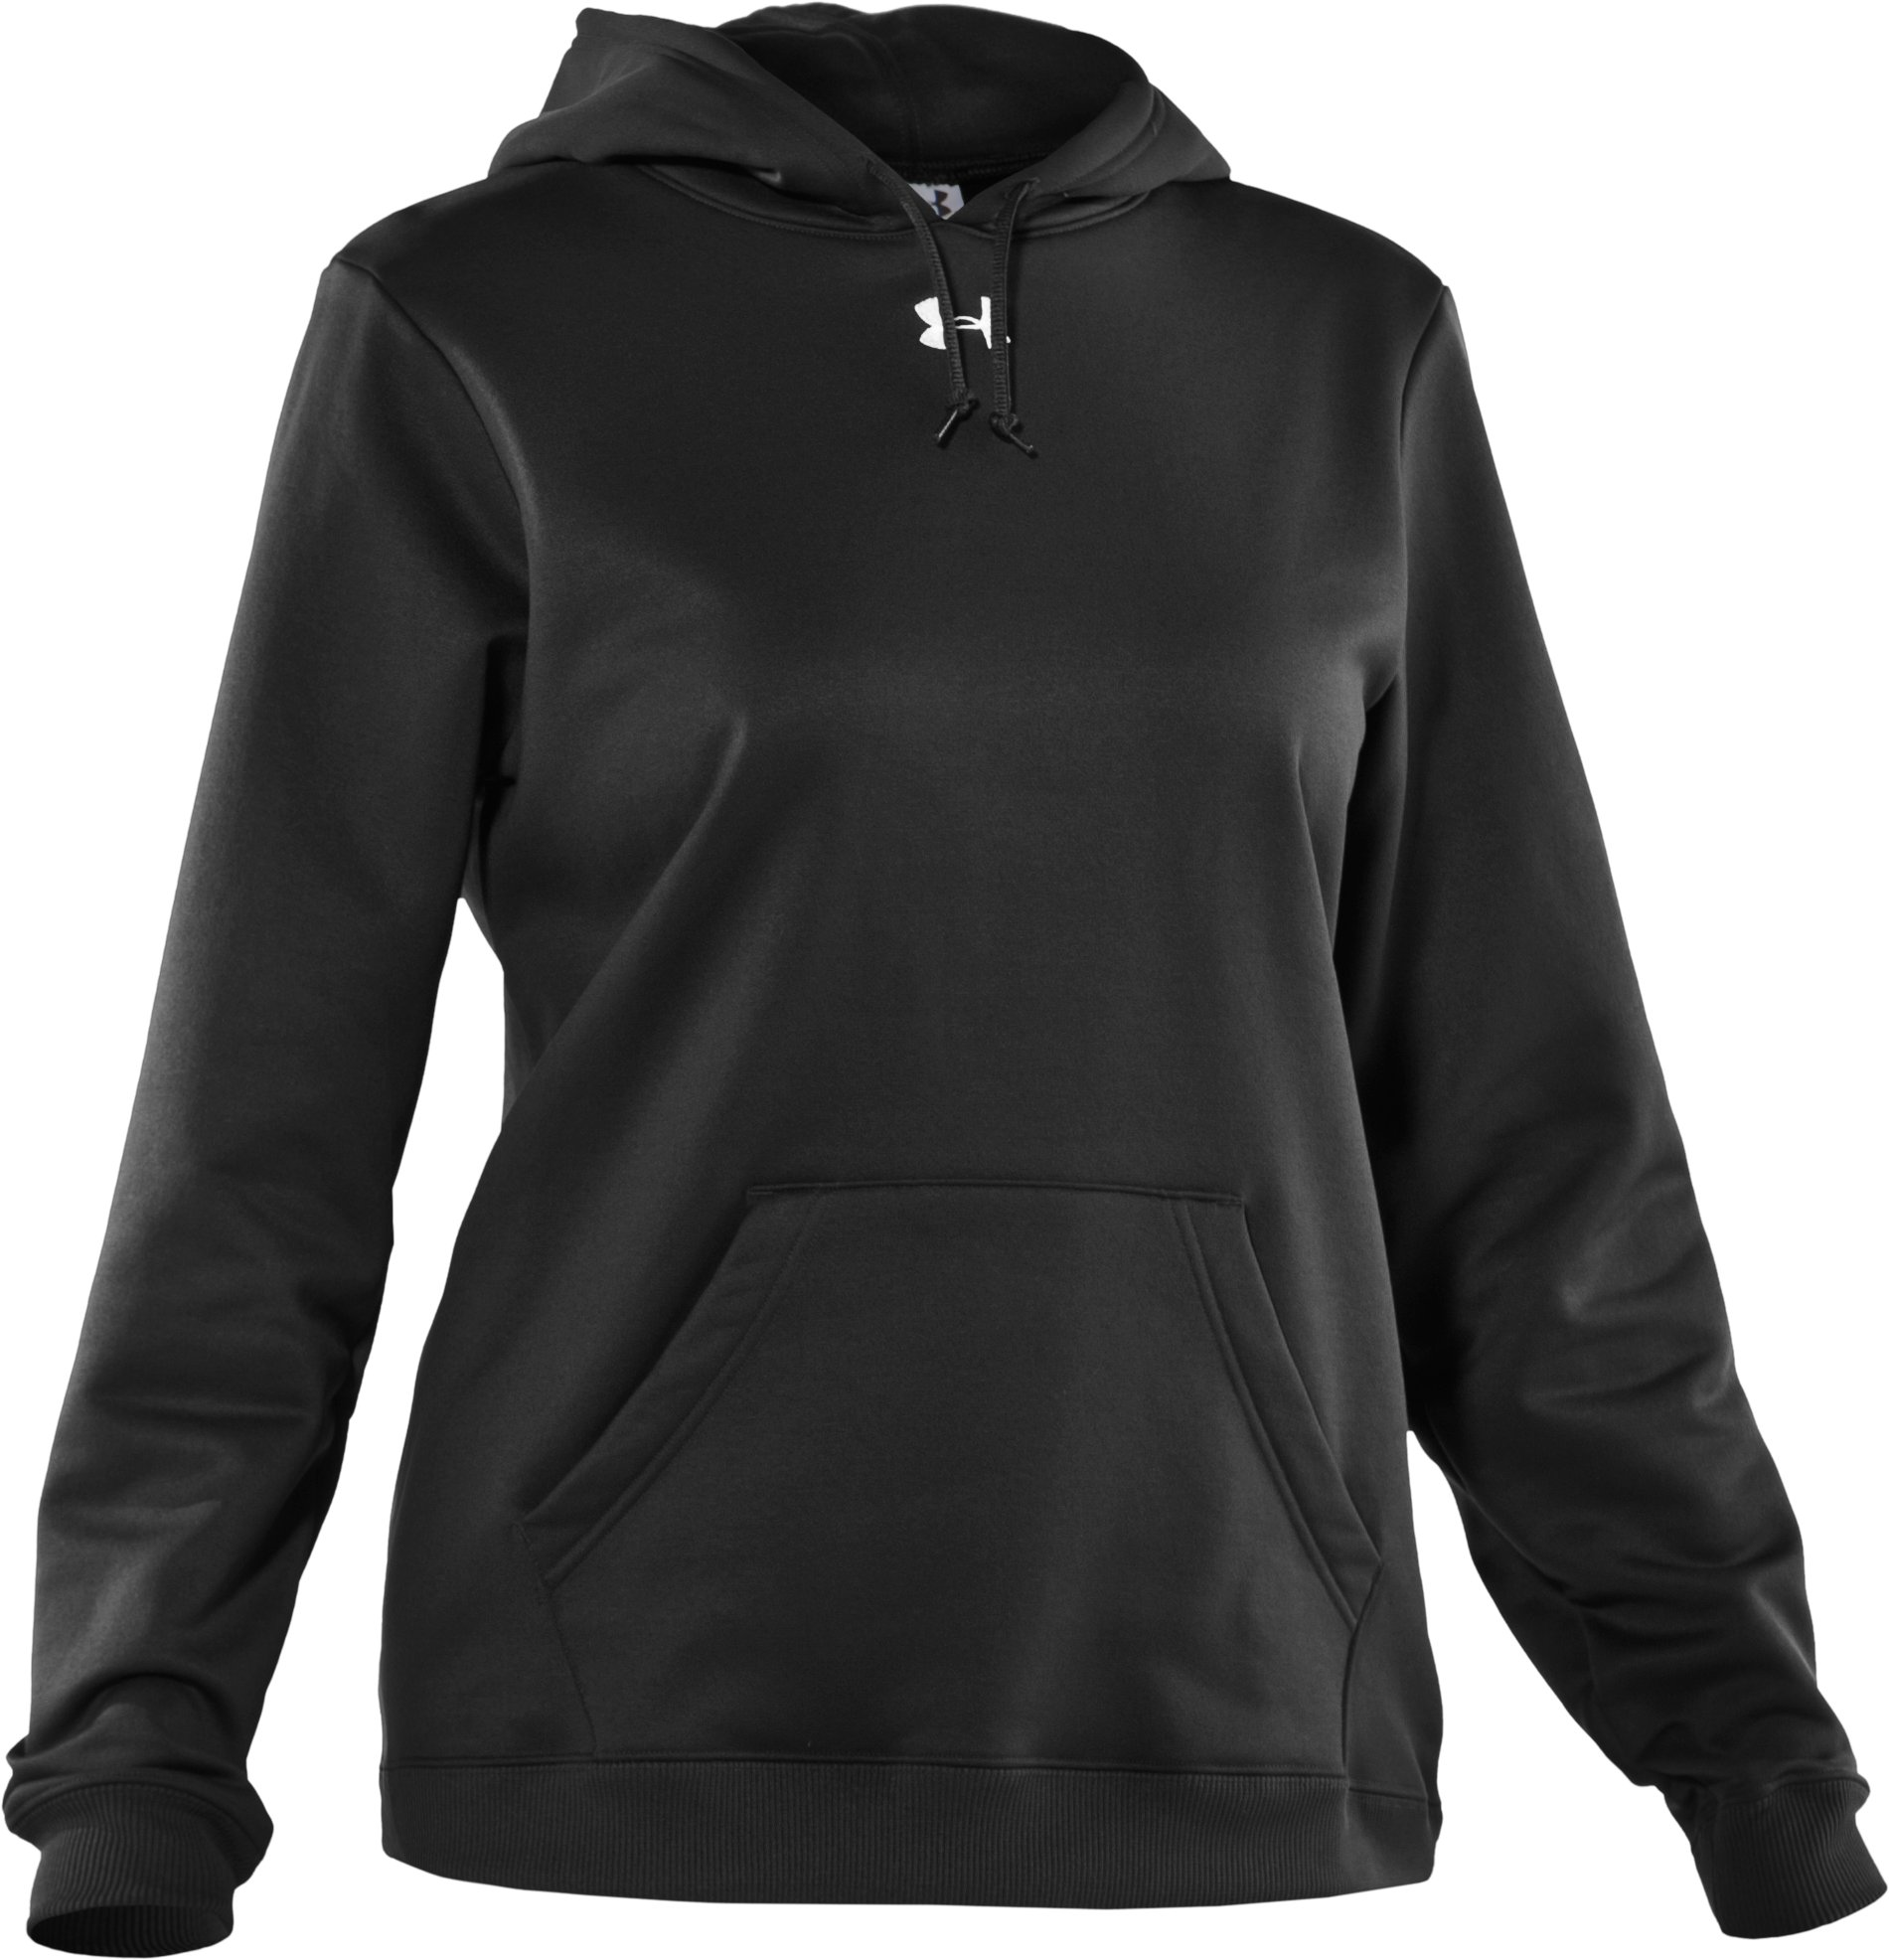 Women's Armour® Fleece Team Hoodie, Black